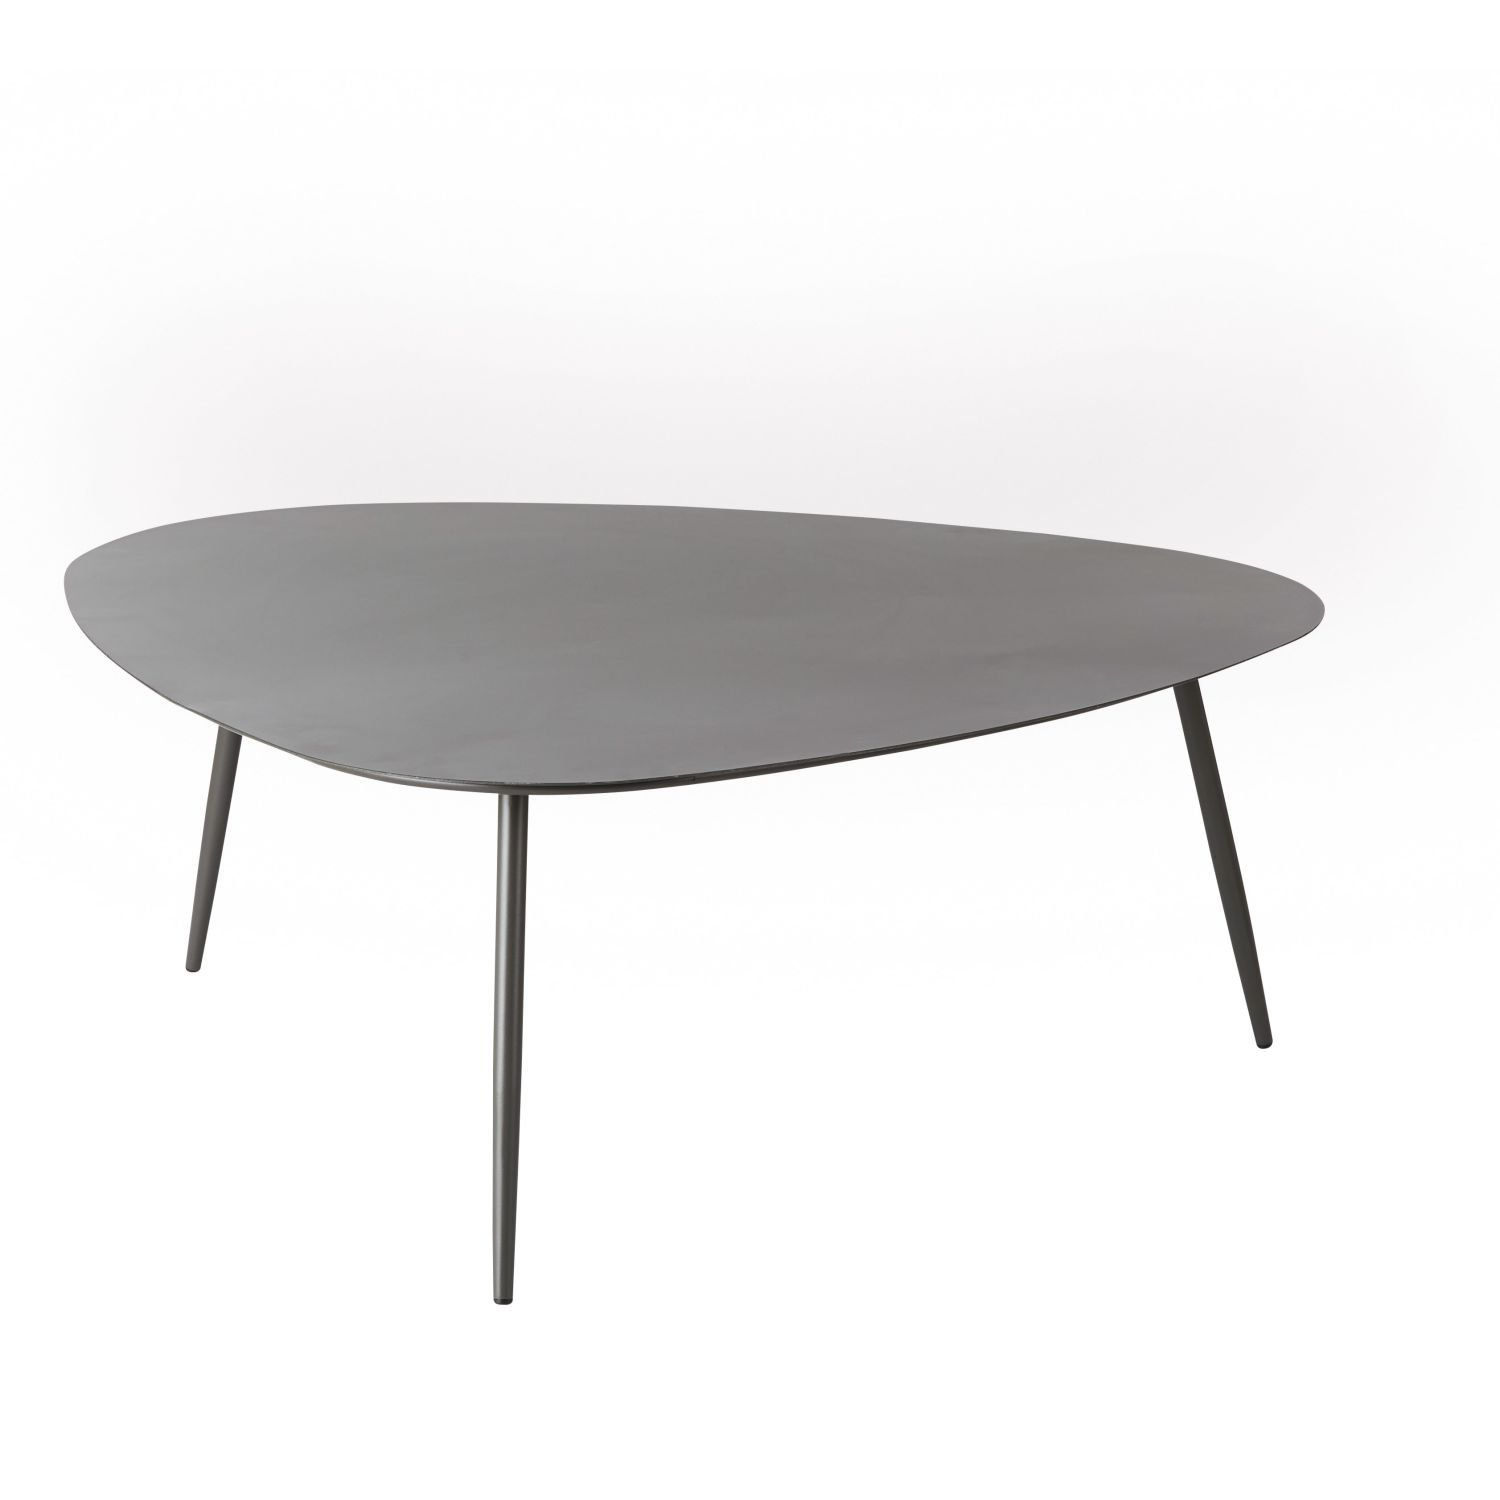 table basse de jardin vintage en m tal gris anthracite maisons du monde. Black Bedroom Furniture Sets. Home Design Ideas